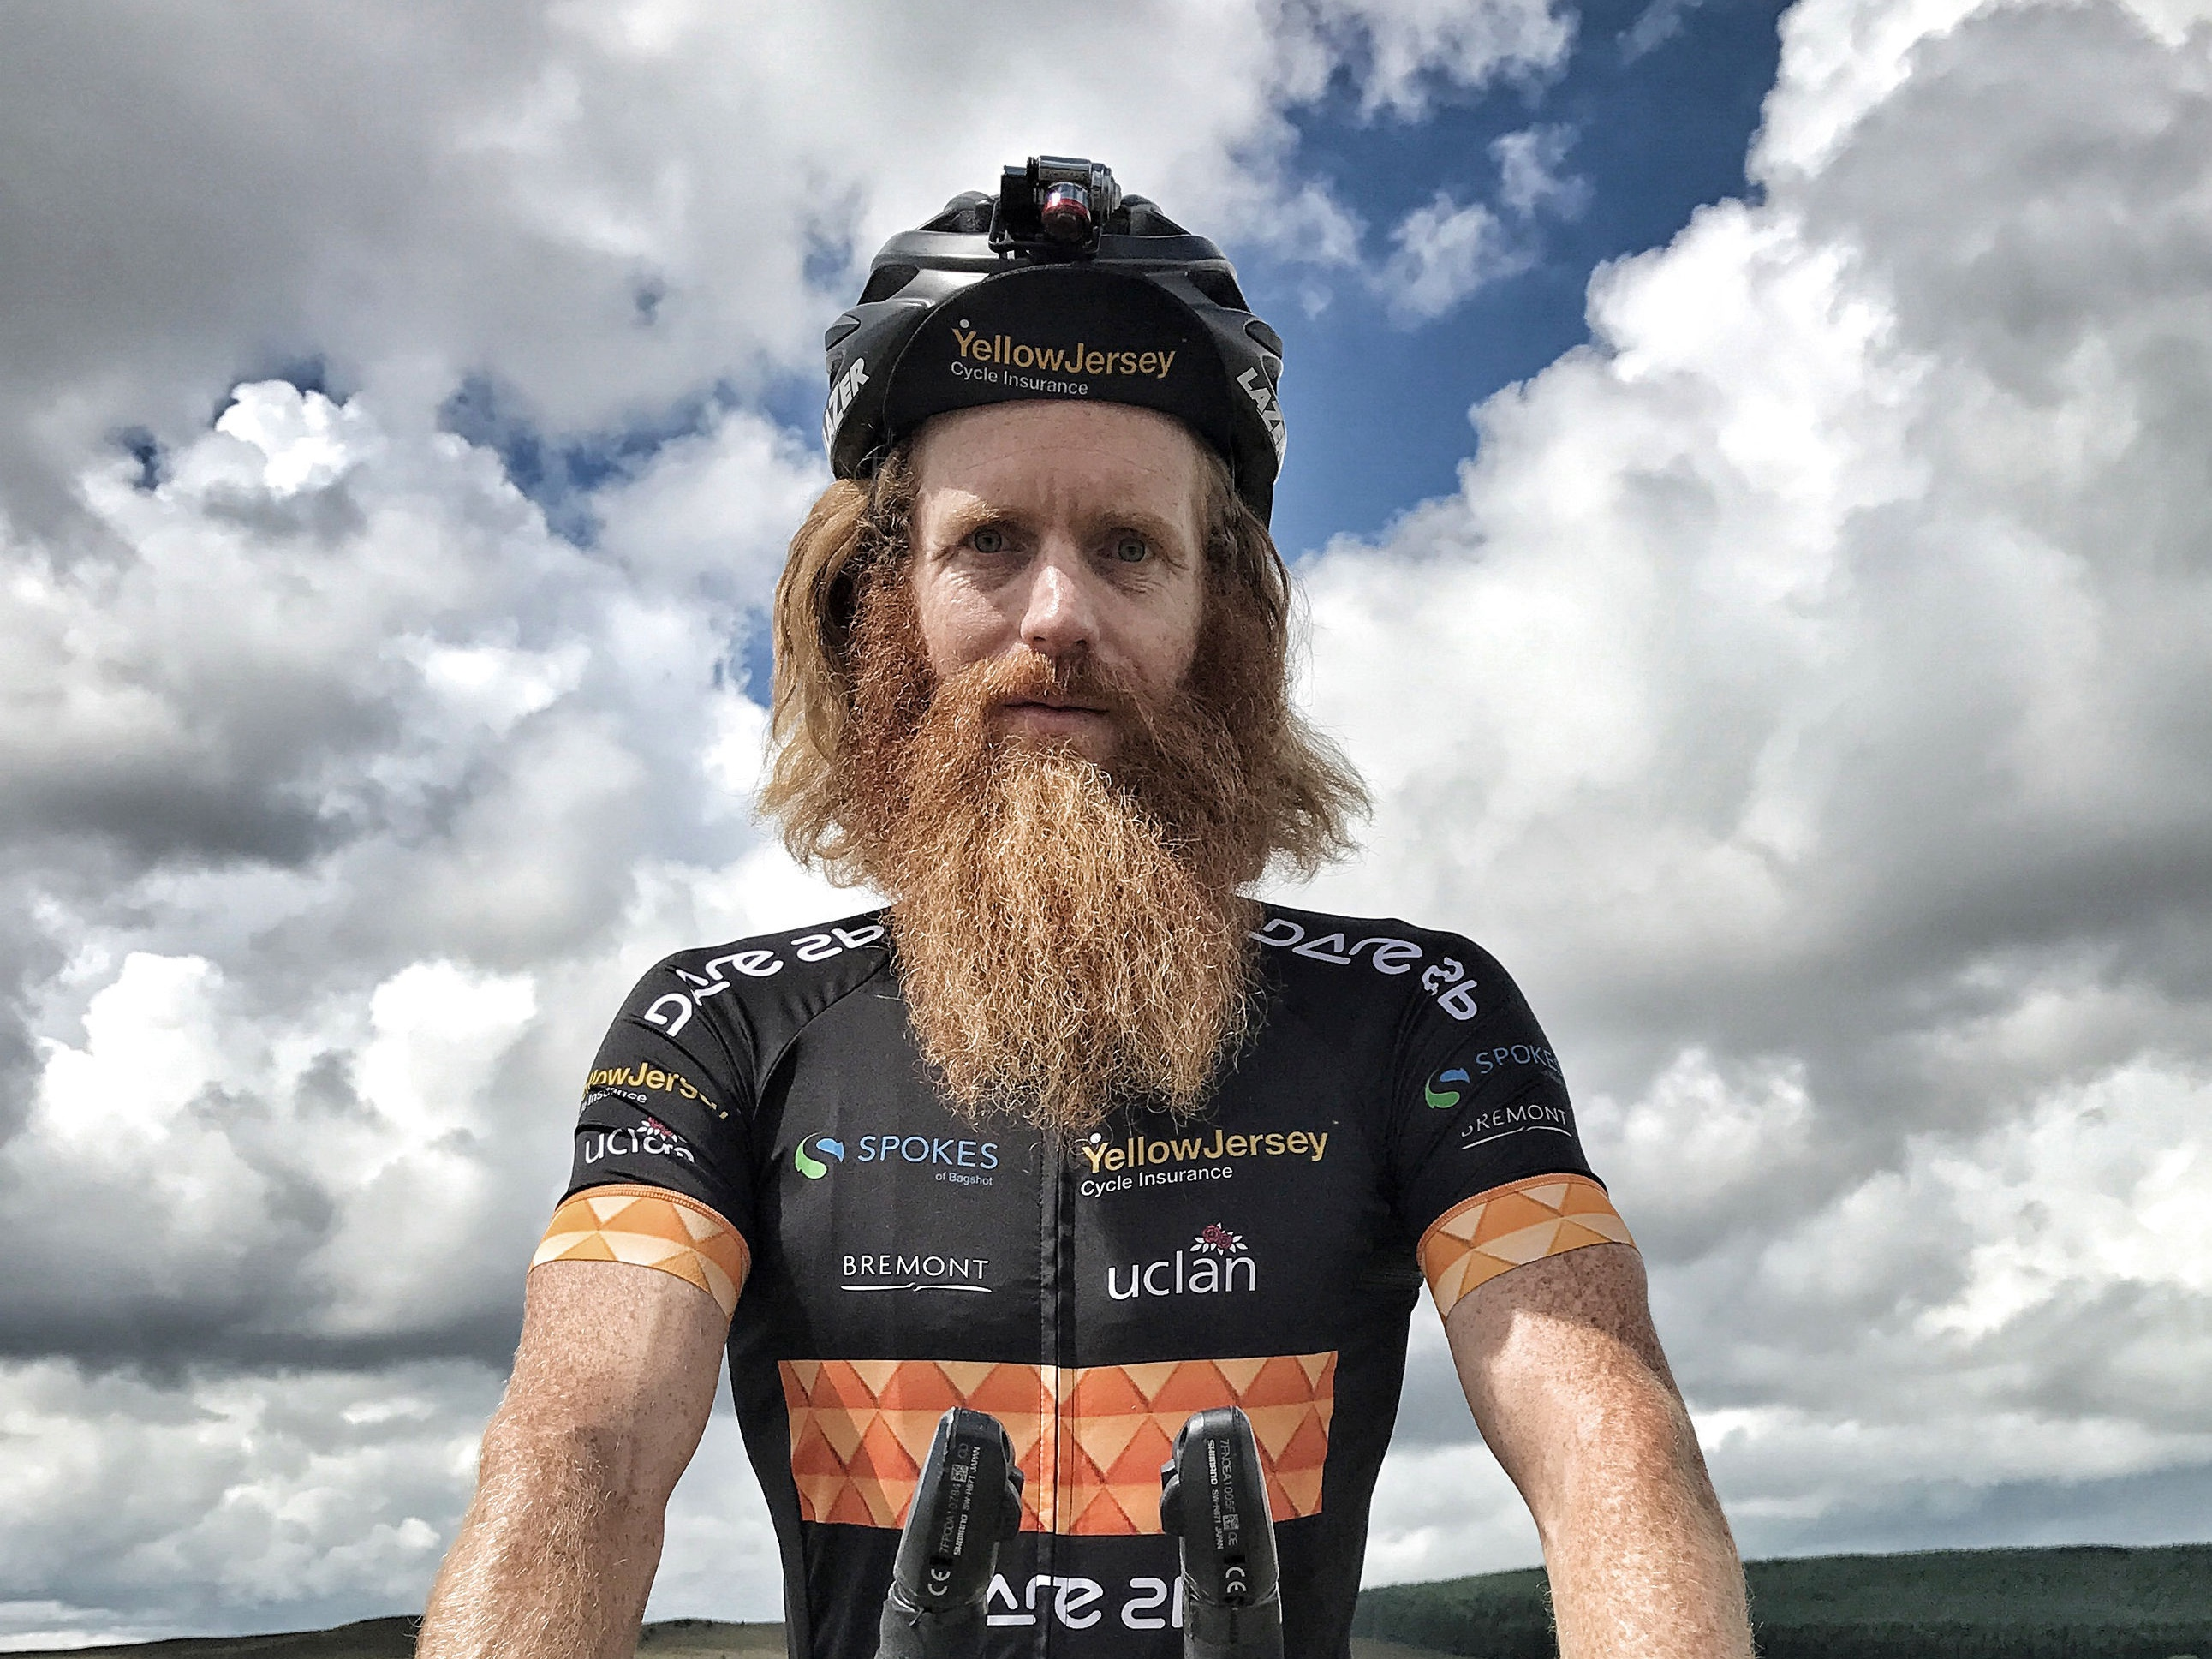 Sean Conway, who will attempt to break the Guinness World Record for the fastest crossing of Europe by bicycle